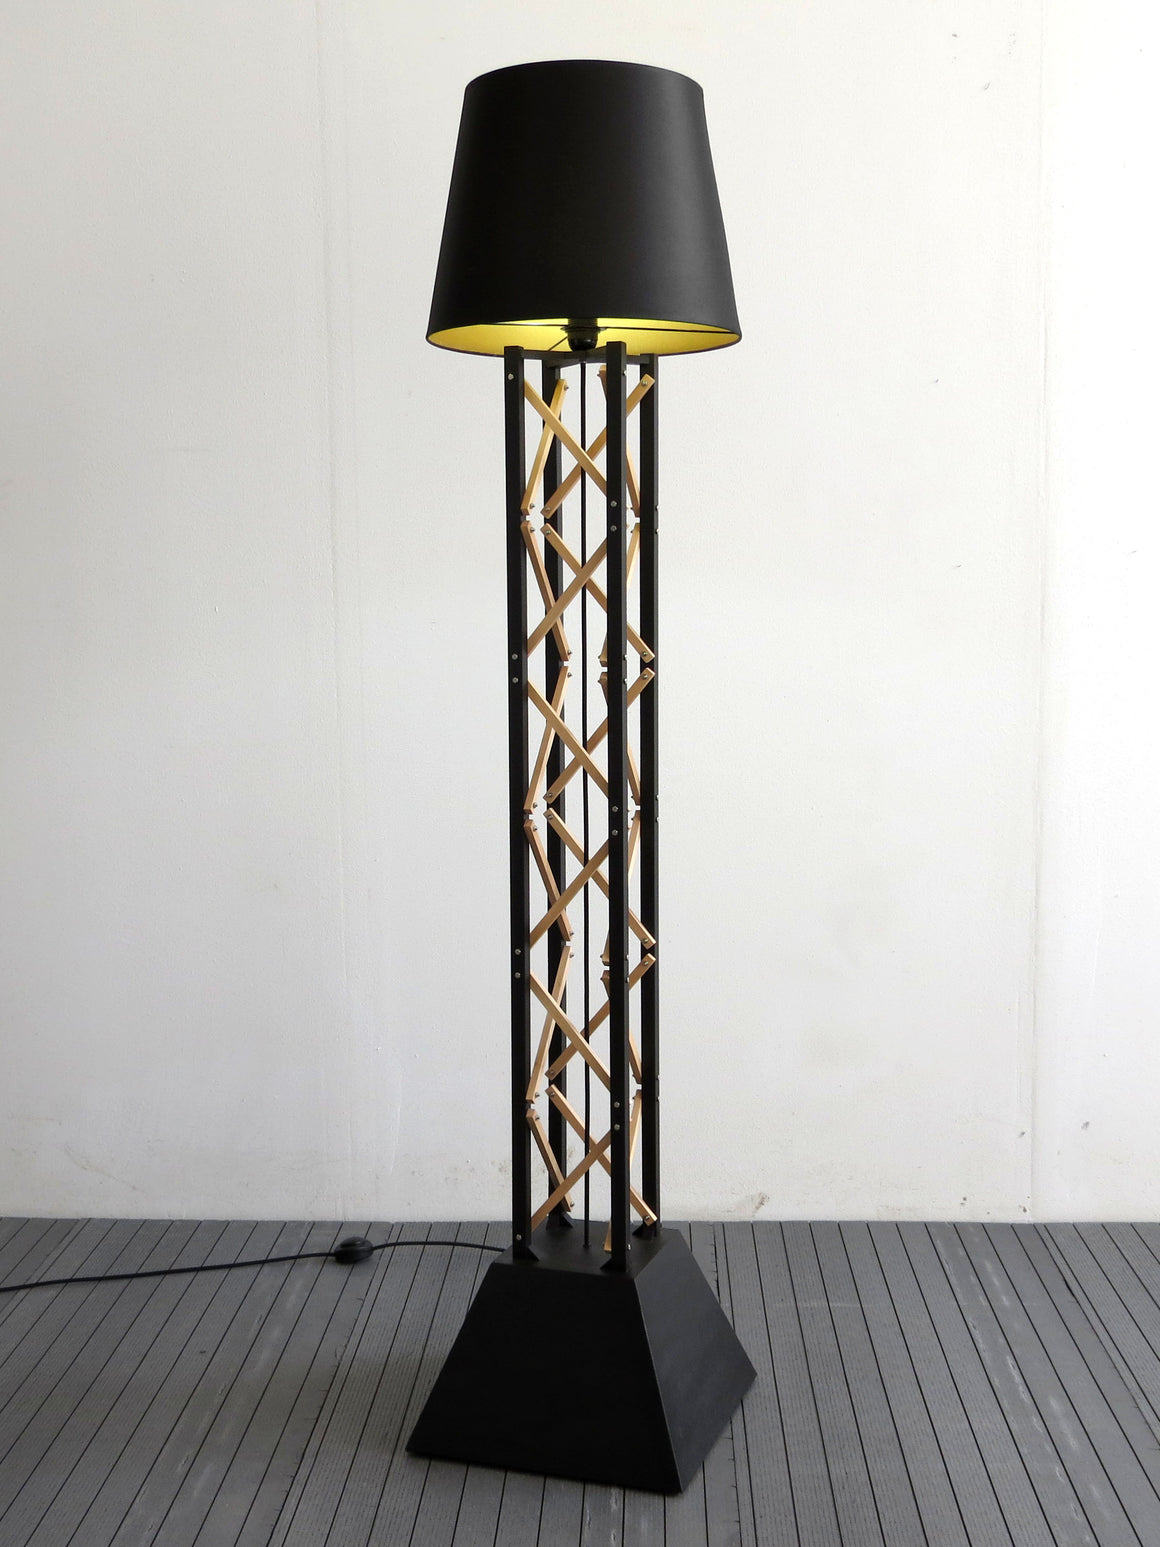 KULA-2 tower floor lamp